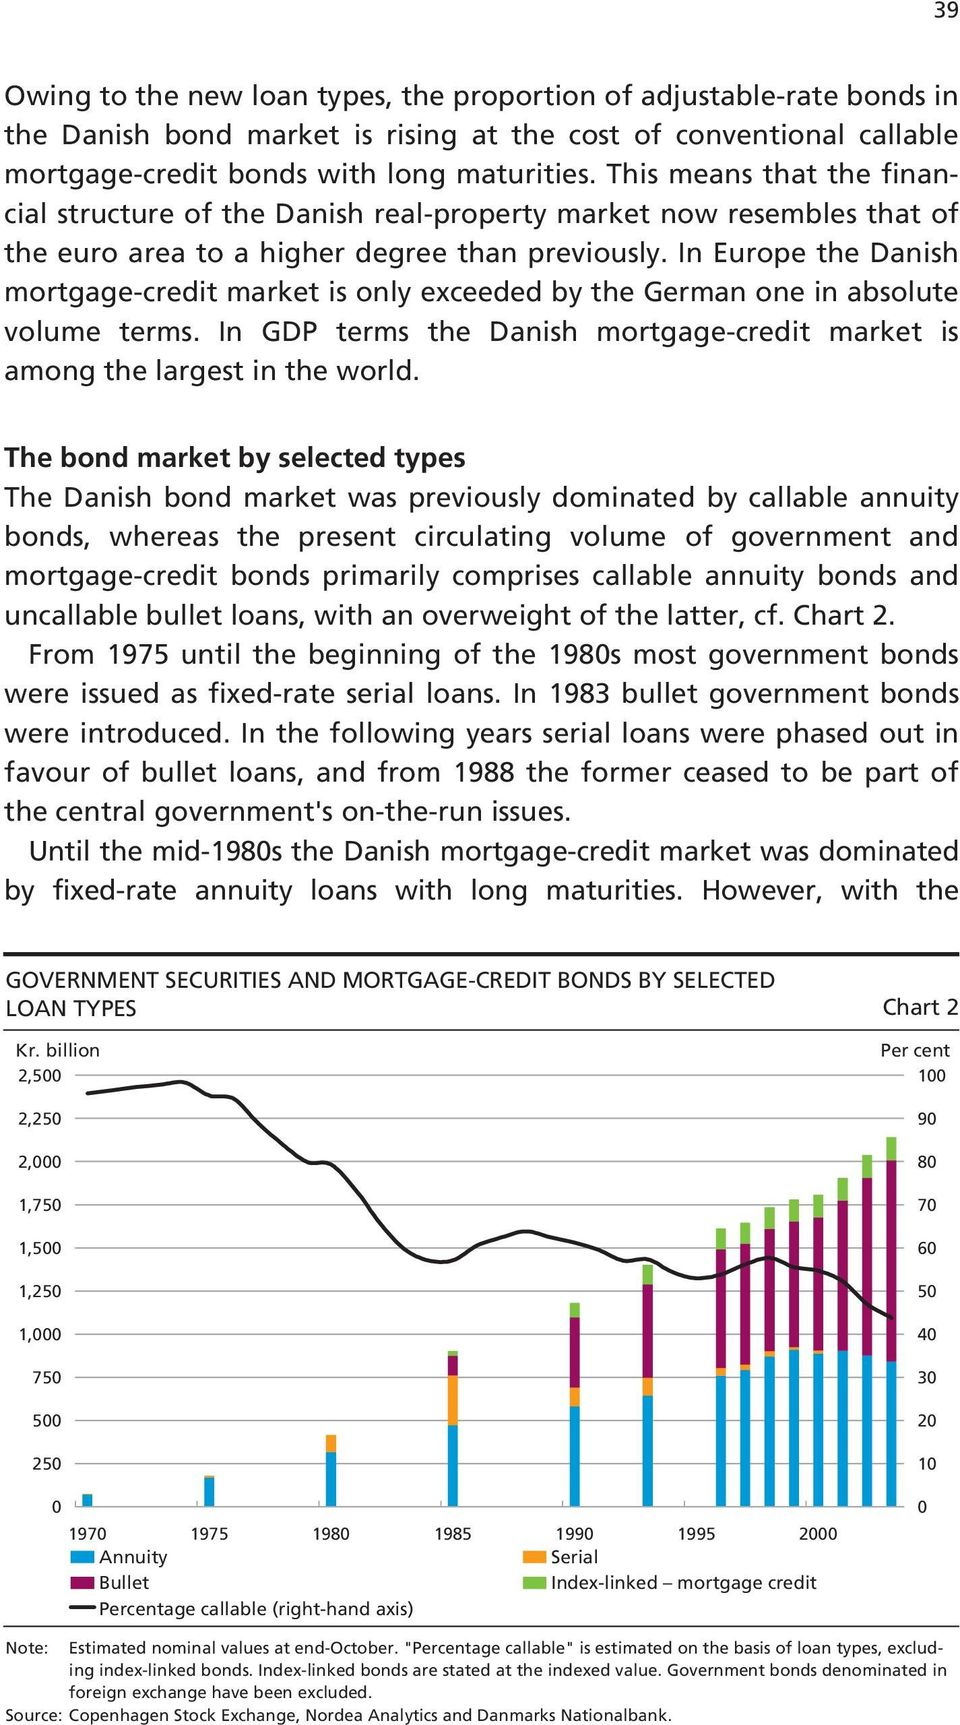 In Europe the Danish mortgage-credit market is only exceeded by the German one in absolute volume terms. In GDP terms the Danish mortgage-credit market is among the largest in the world.